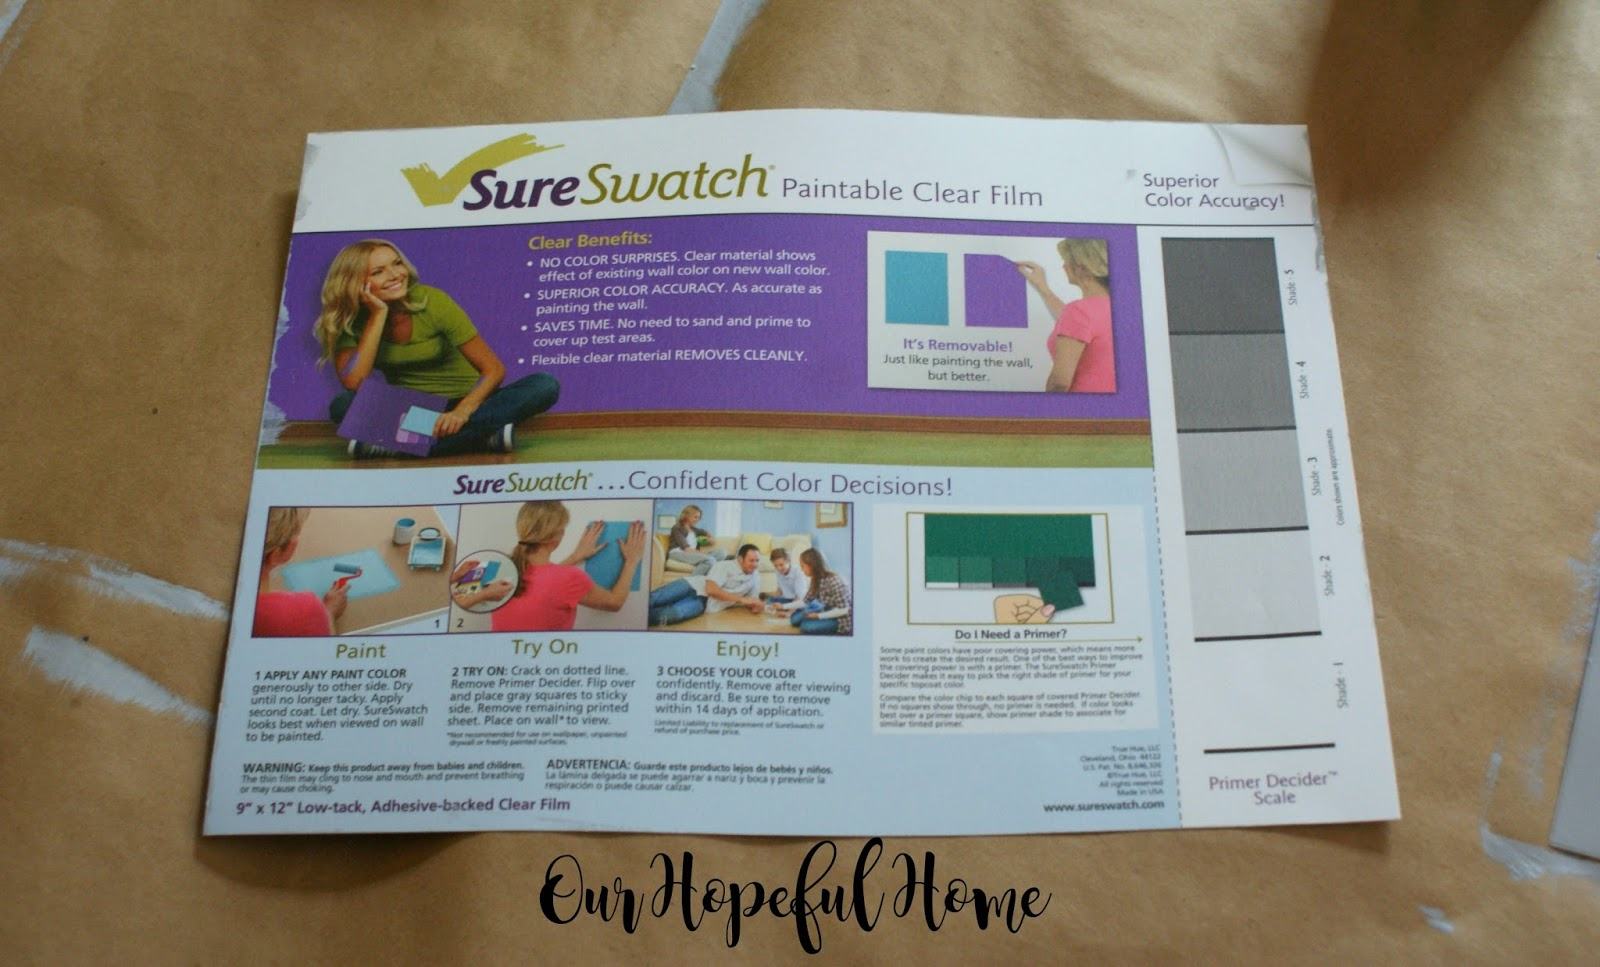 Sure Swatch Paintable Clear Film For Testing Paint Colors